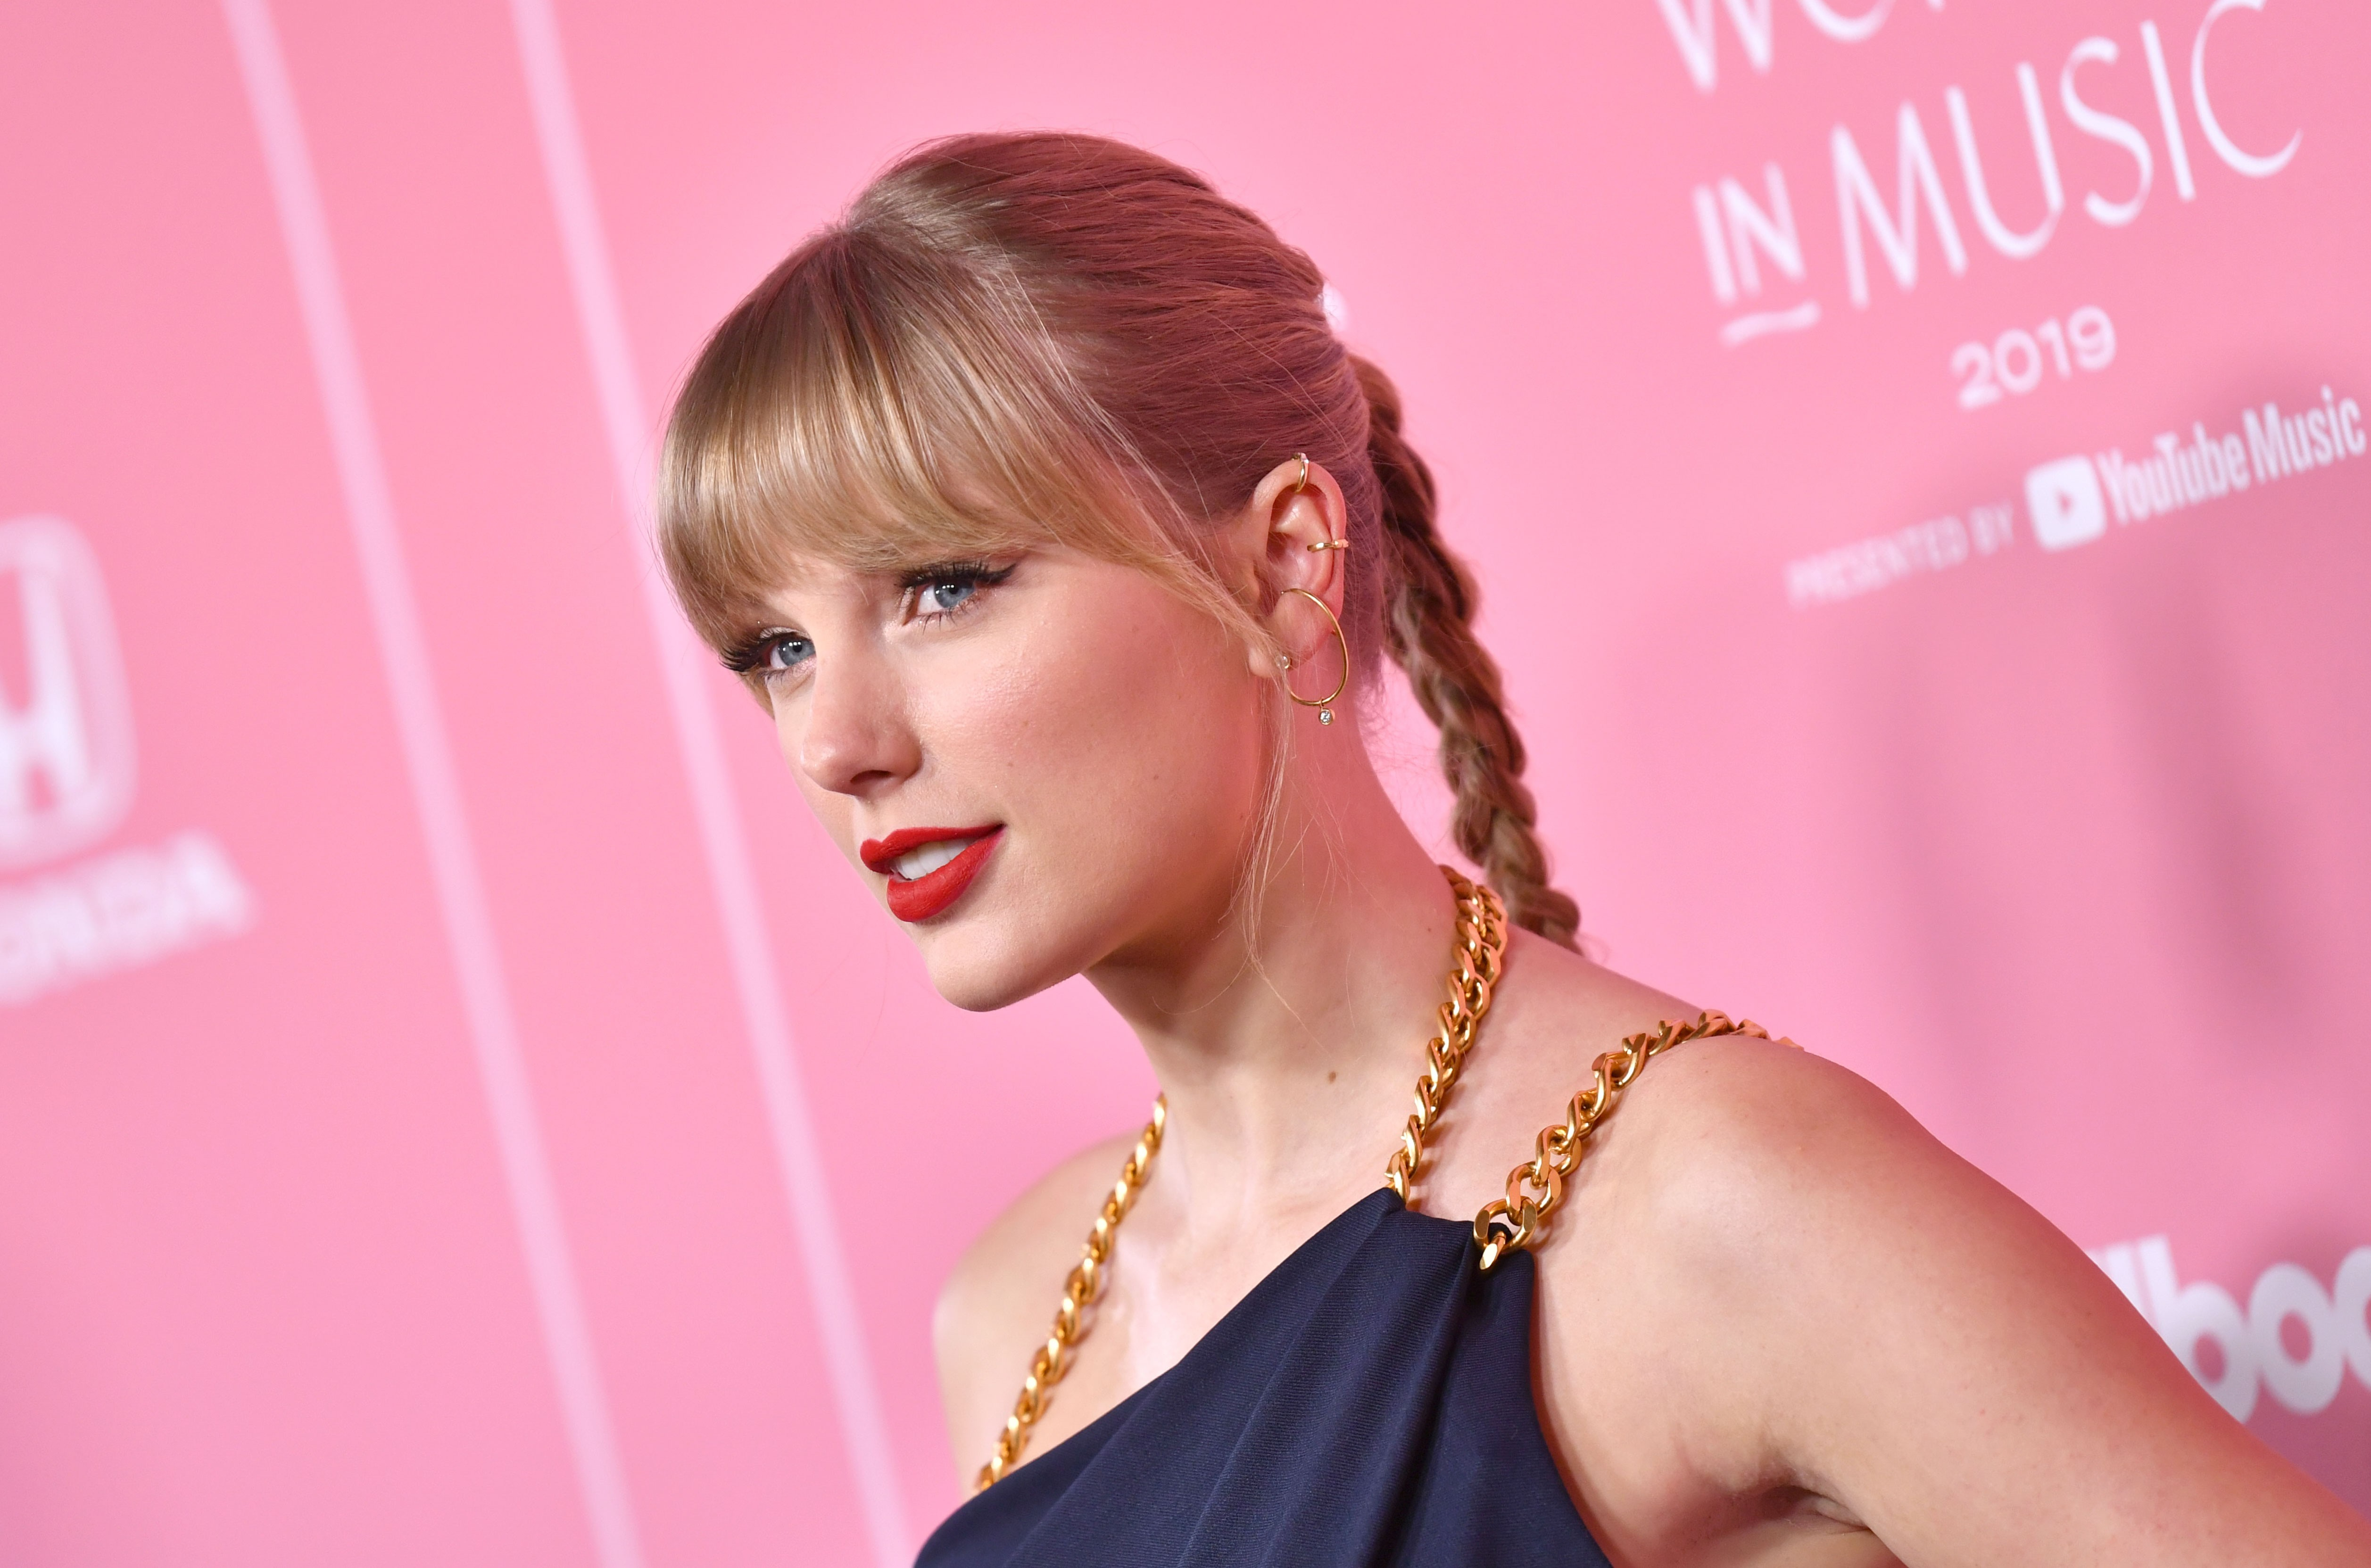 Yes Taylor Swift Recorded A 10 Minute Version Of All Too Well With A Swear Word Billboard